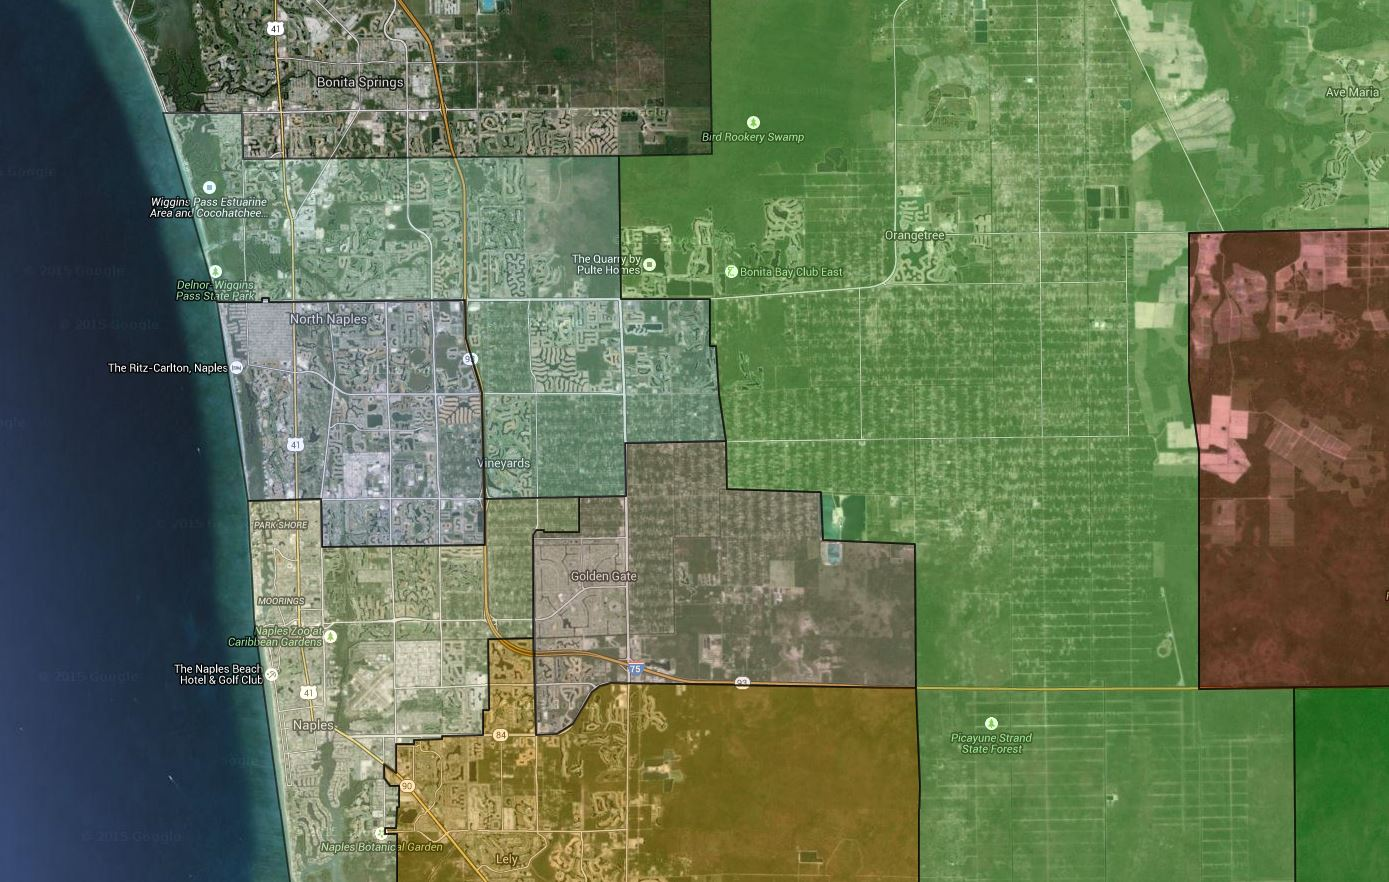 Collier county zoning